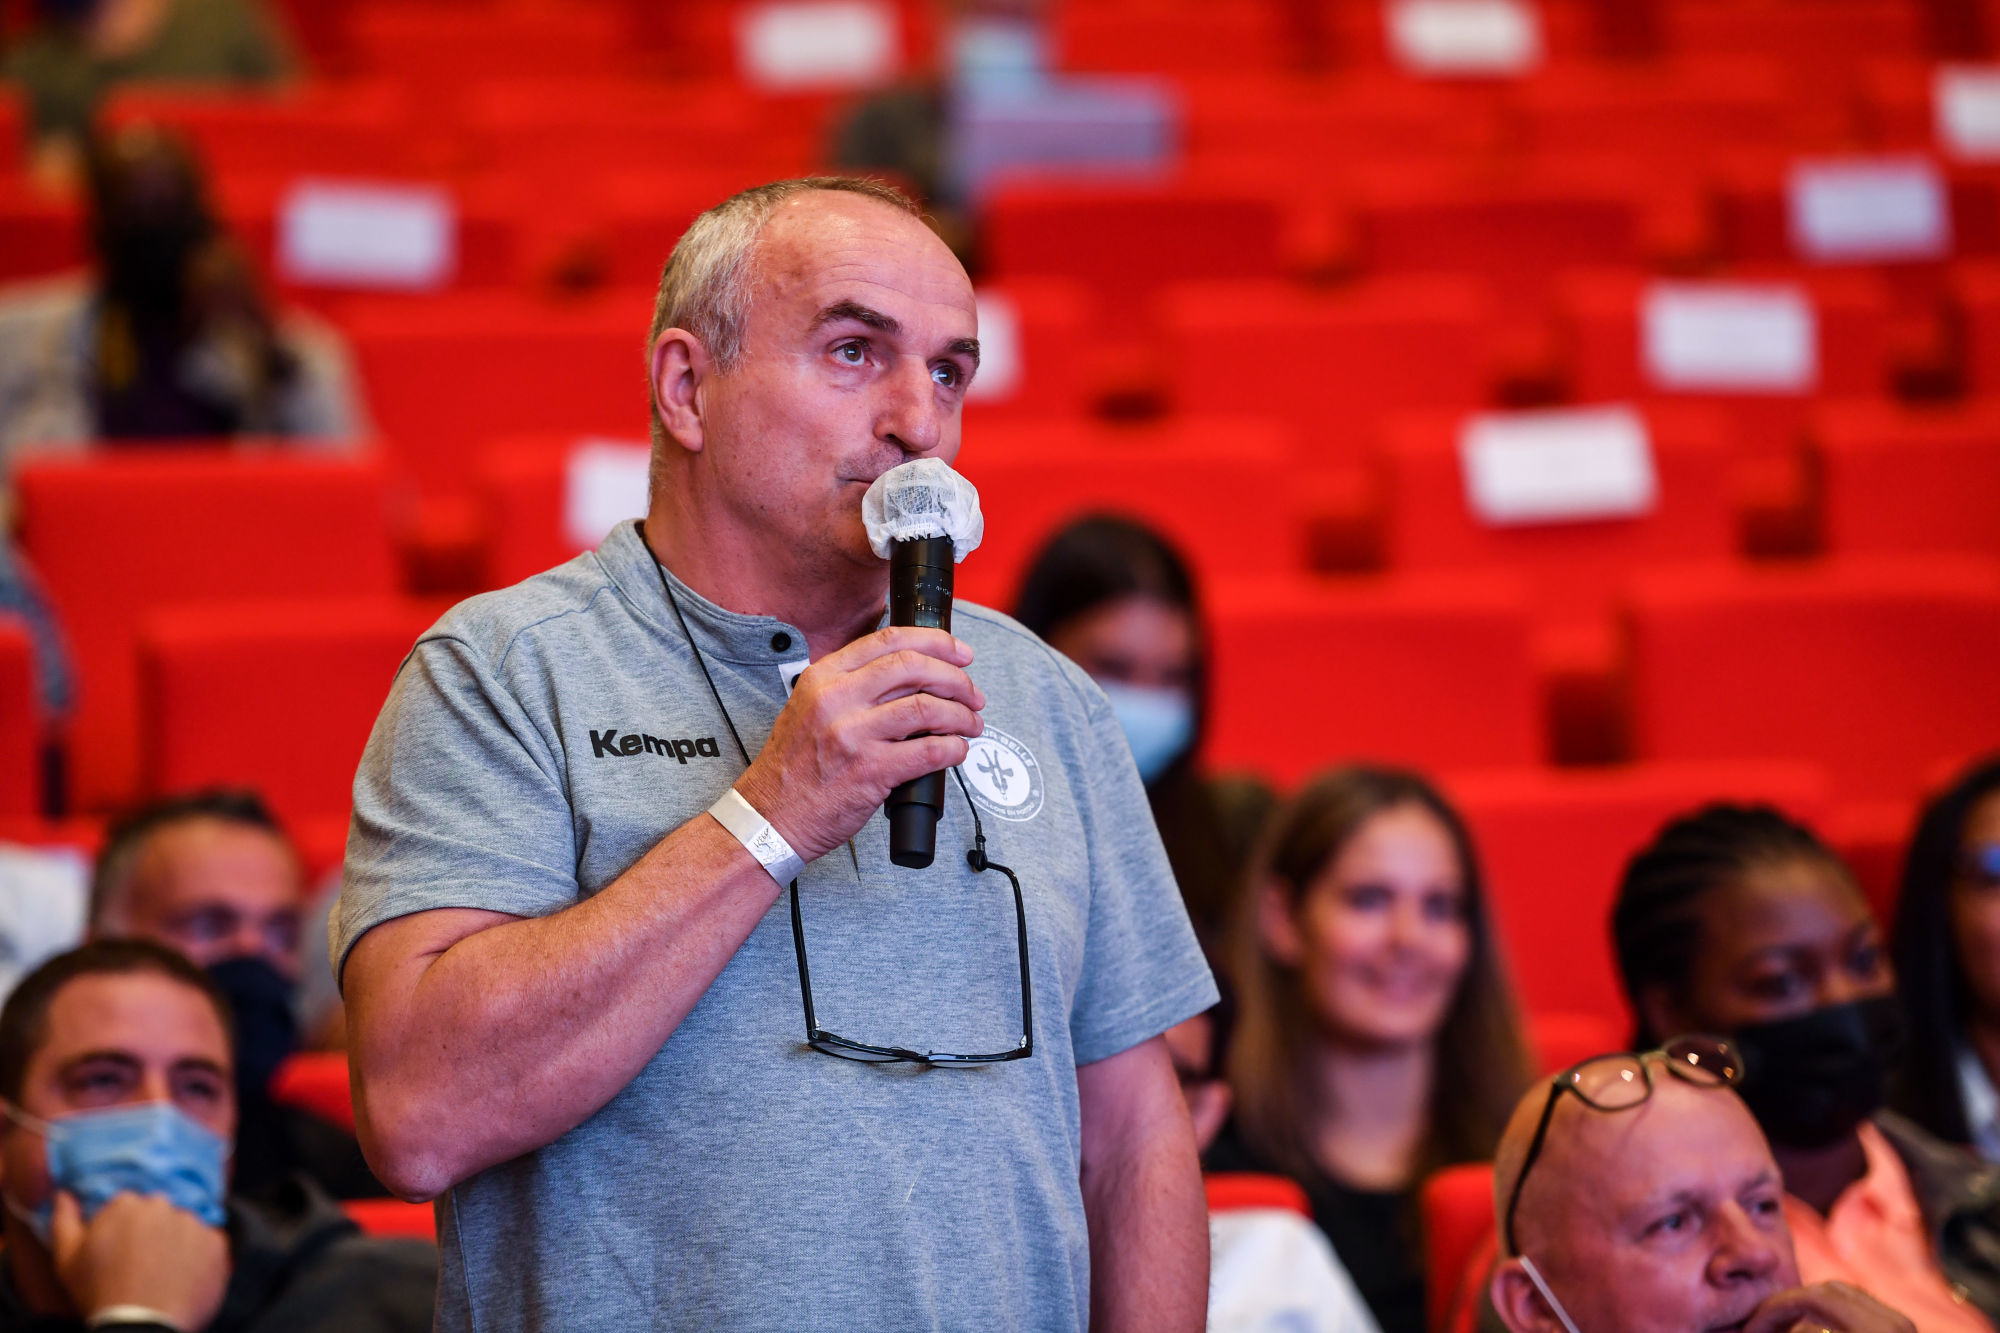 Thierry VINCENT head coach of Celles sur Belle during the press conference of French Women Handball National League at Maison du Handball on September 1, 2021 in Creteil, France. (Photo by Baptiste Fernandez/Icon Sport) - Thierry VINCENT - Maison du Handball - Creteil (France)